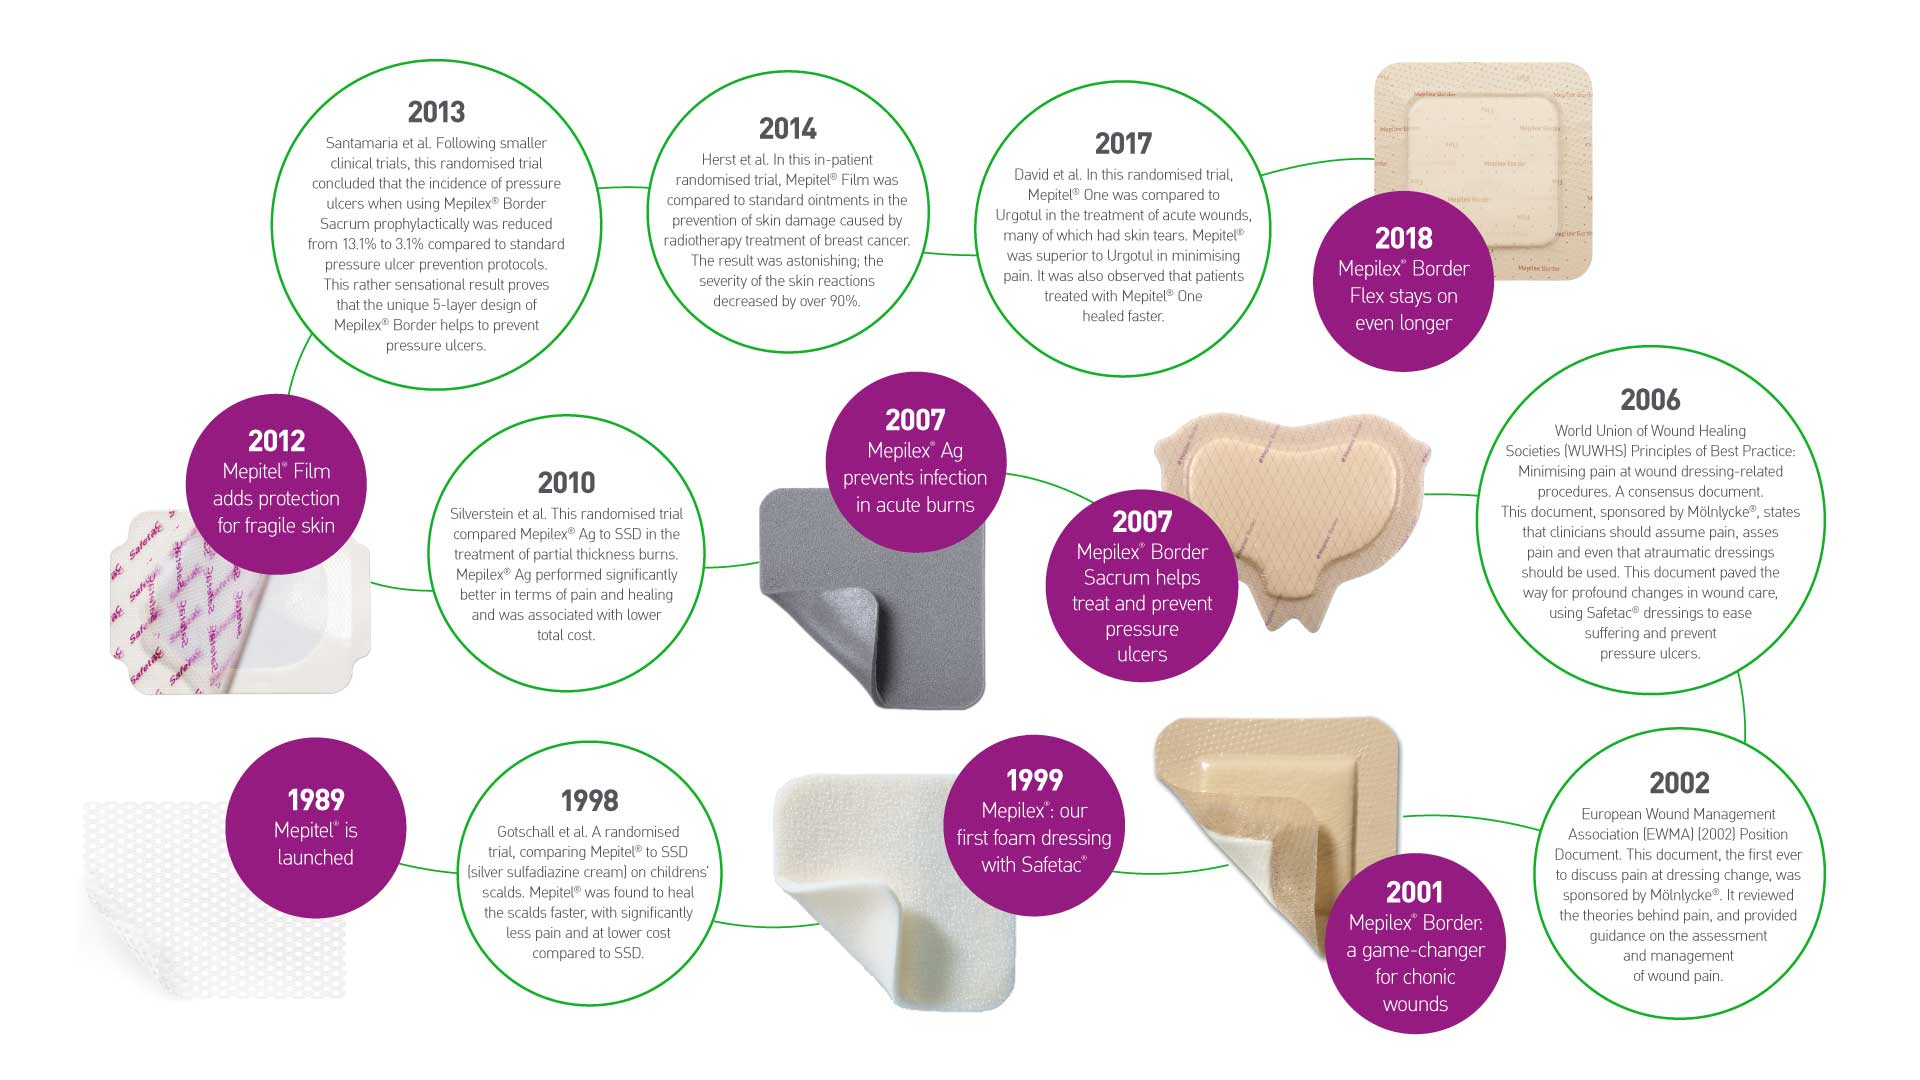 Safetac - The technology that changed wound care forever